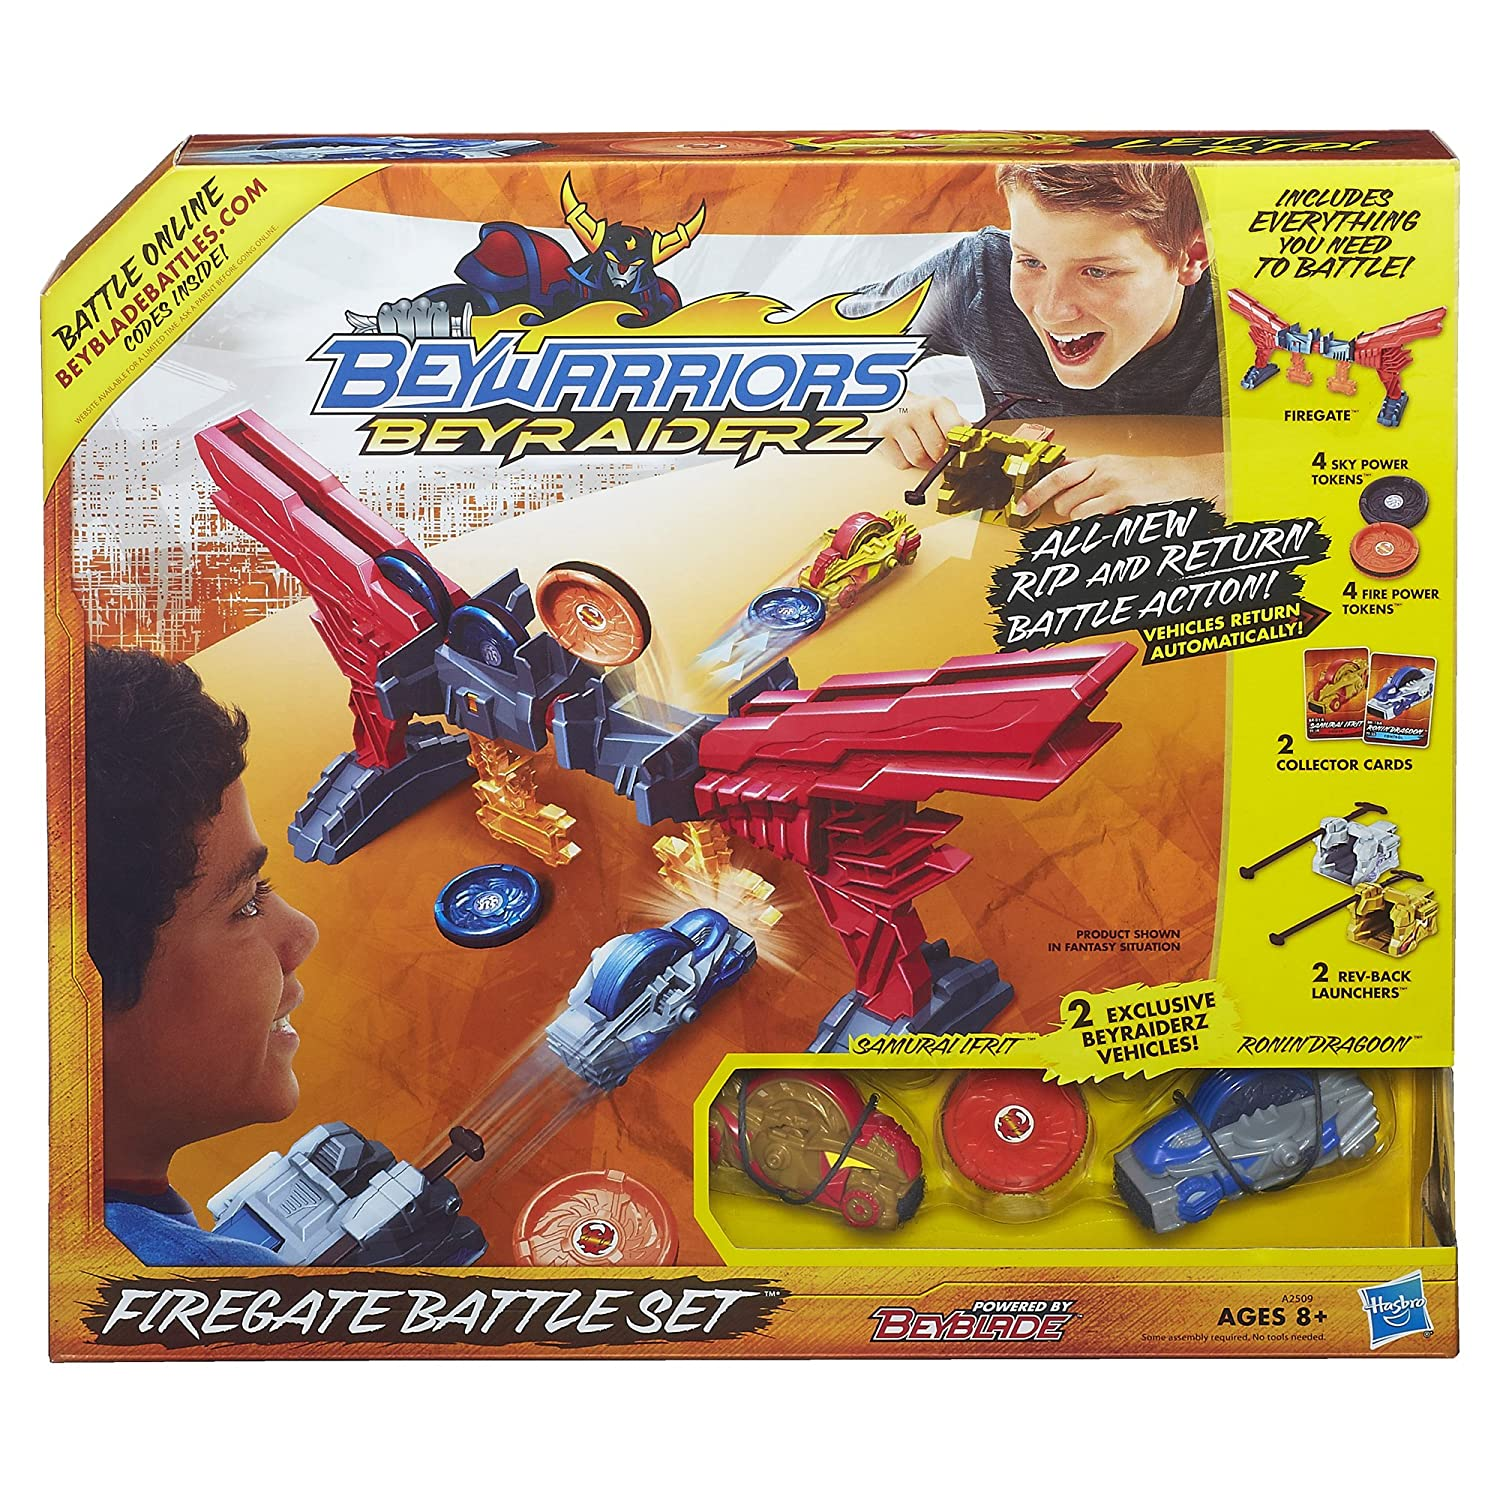 Amazon Beyblade BeyRaiderz Firegate Battle Set Toys & Games